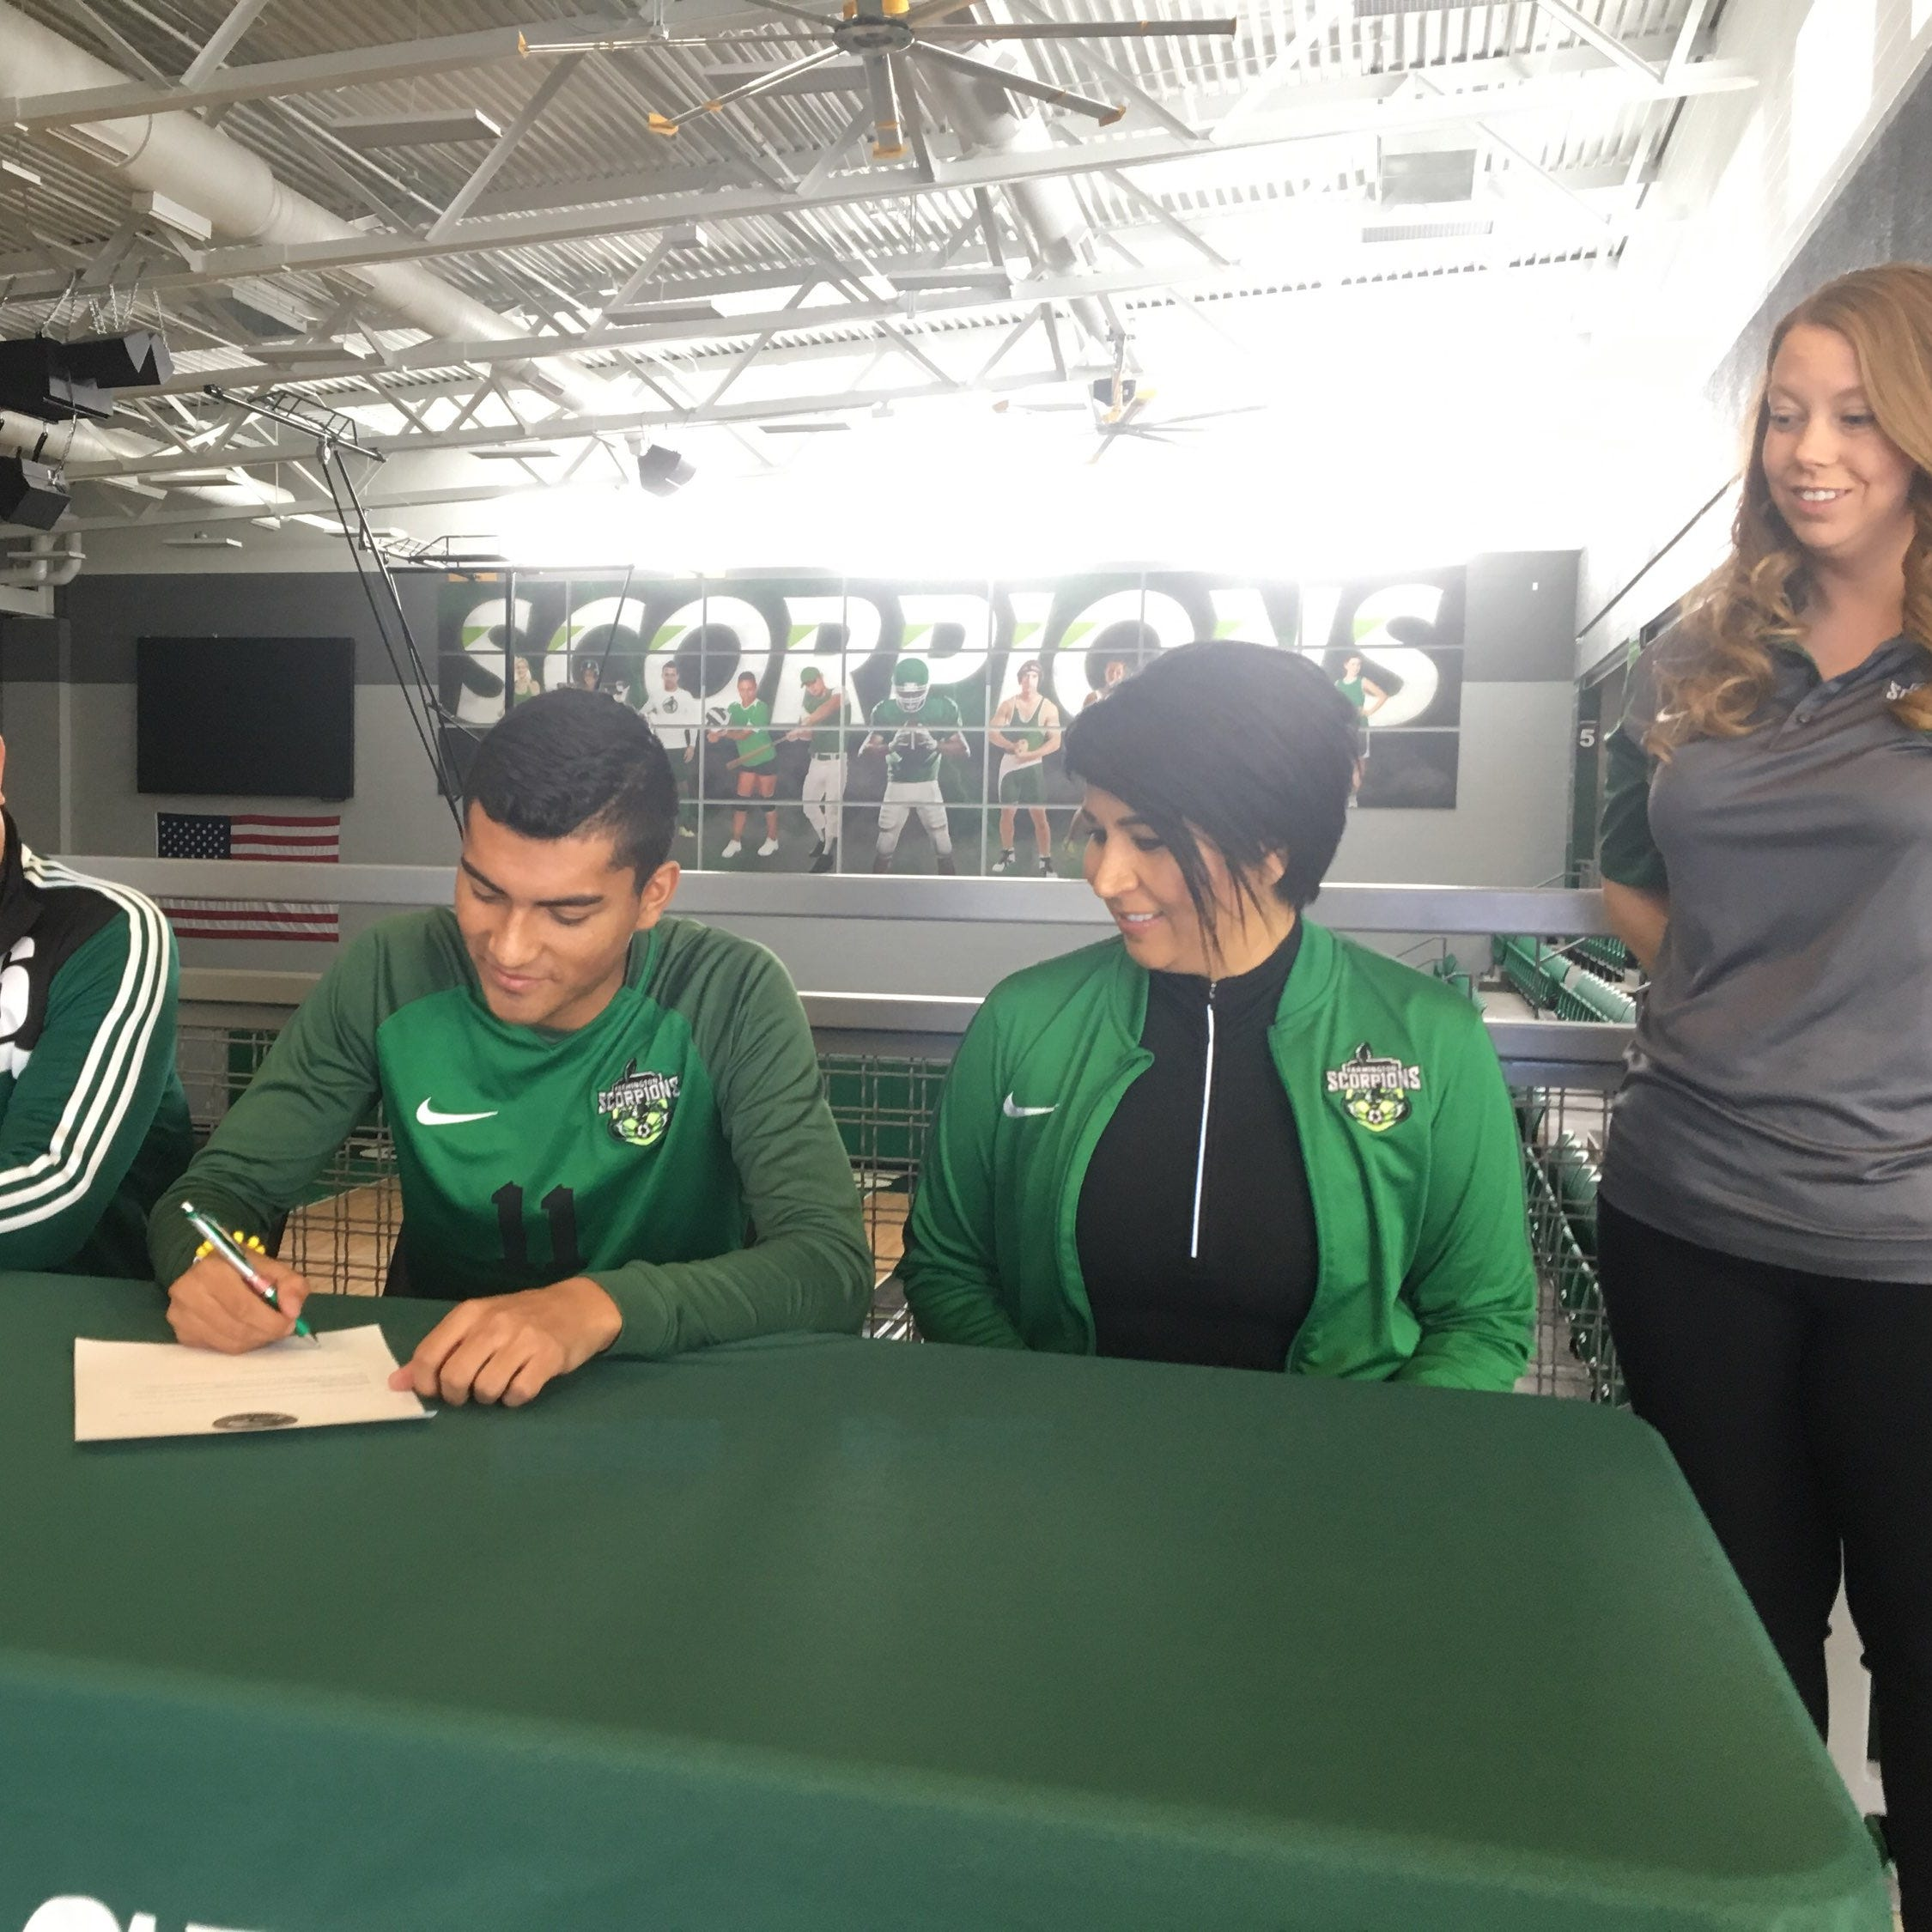 Scorps defender inks with Feather River soccer